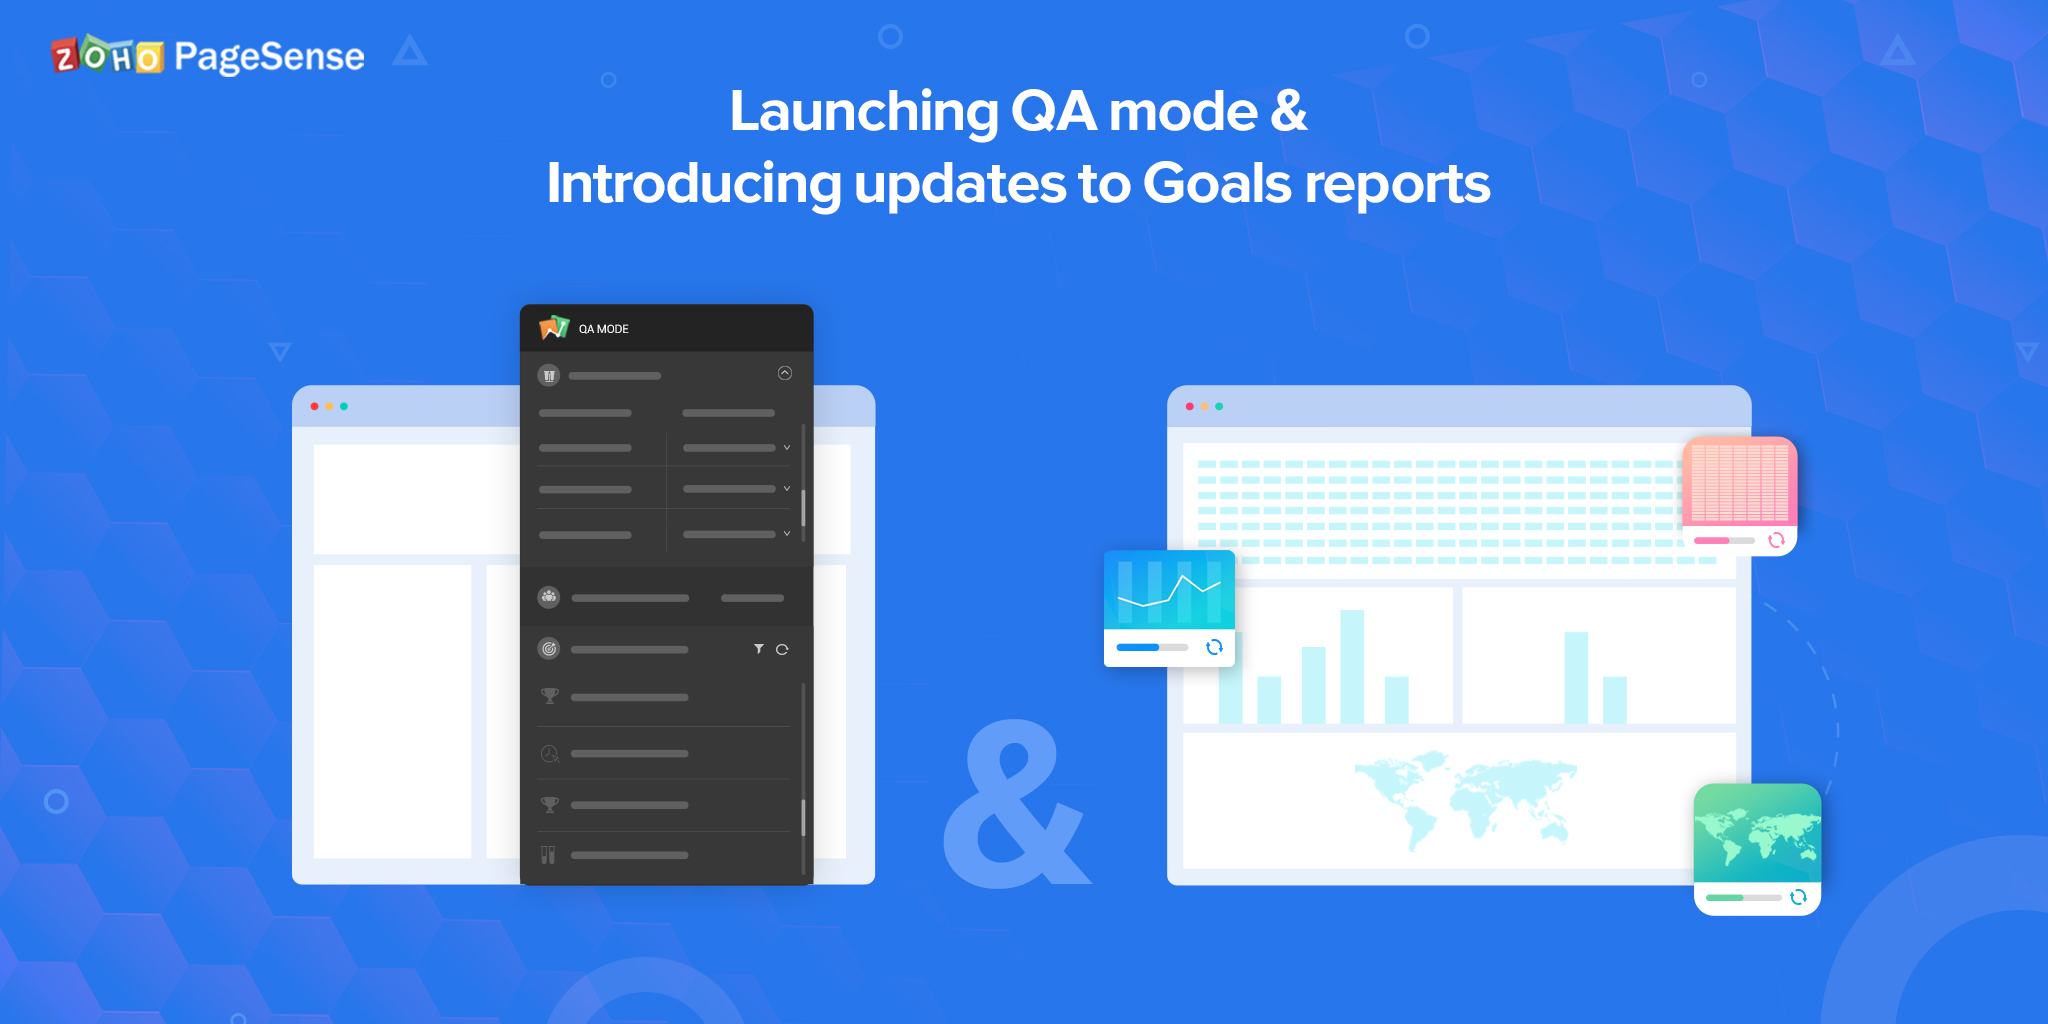 Introducing QA mode and brand-new updates in Goals reports